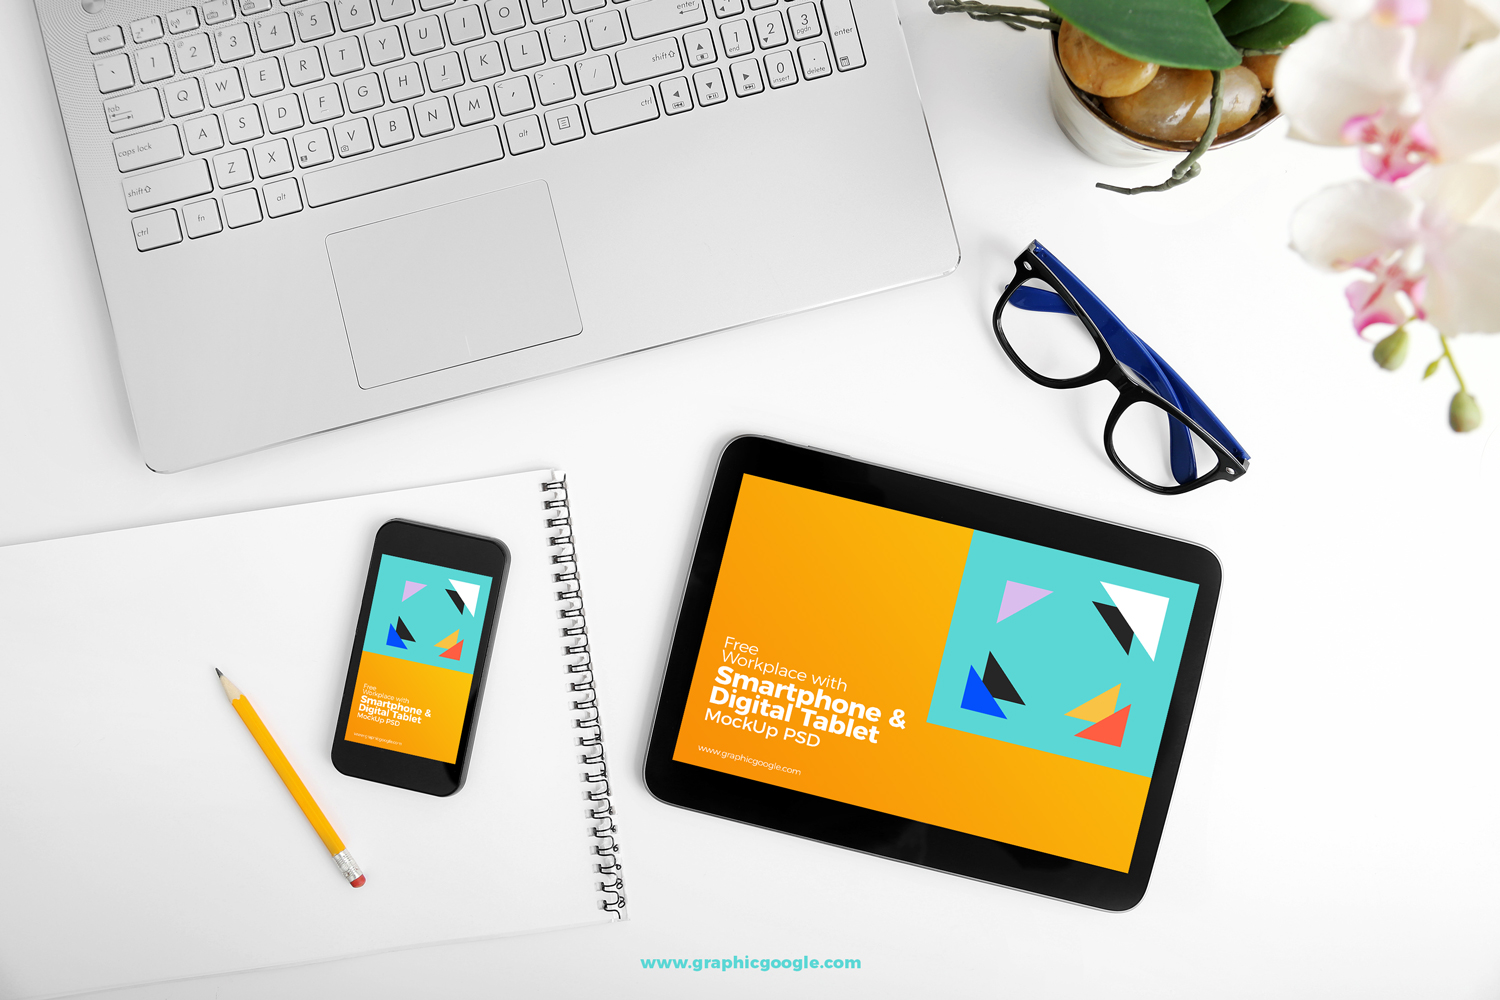 Free-Workplace-With-Smartphone-&-Digital-Tablet-MockUp-PSD